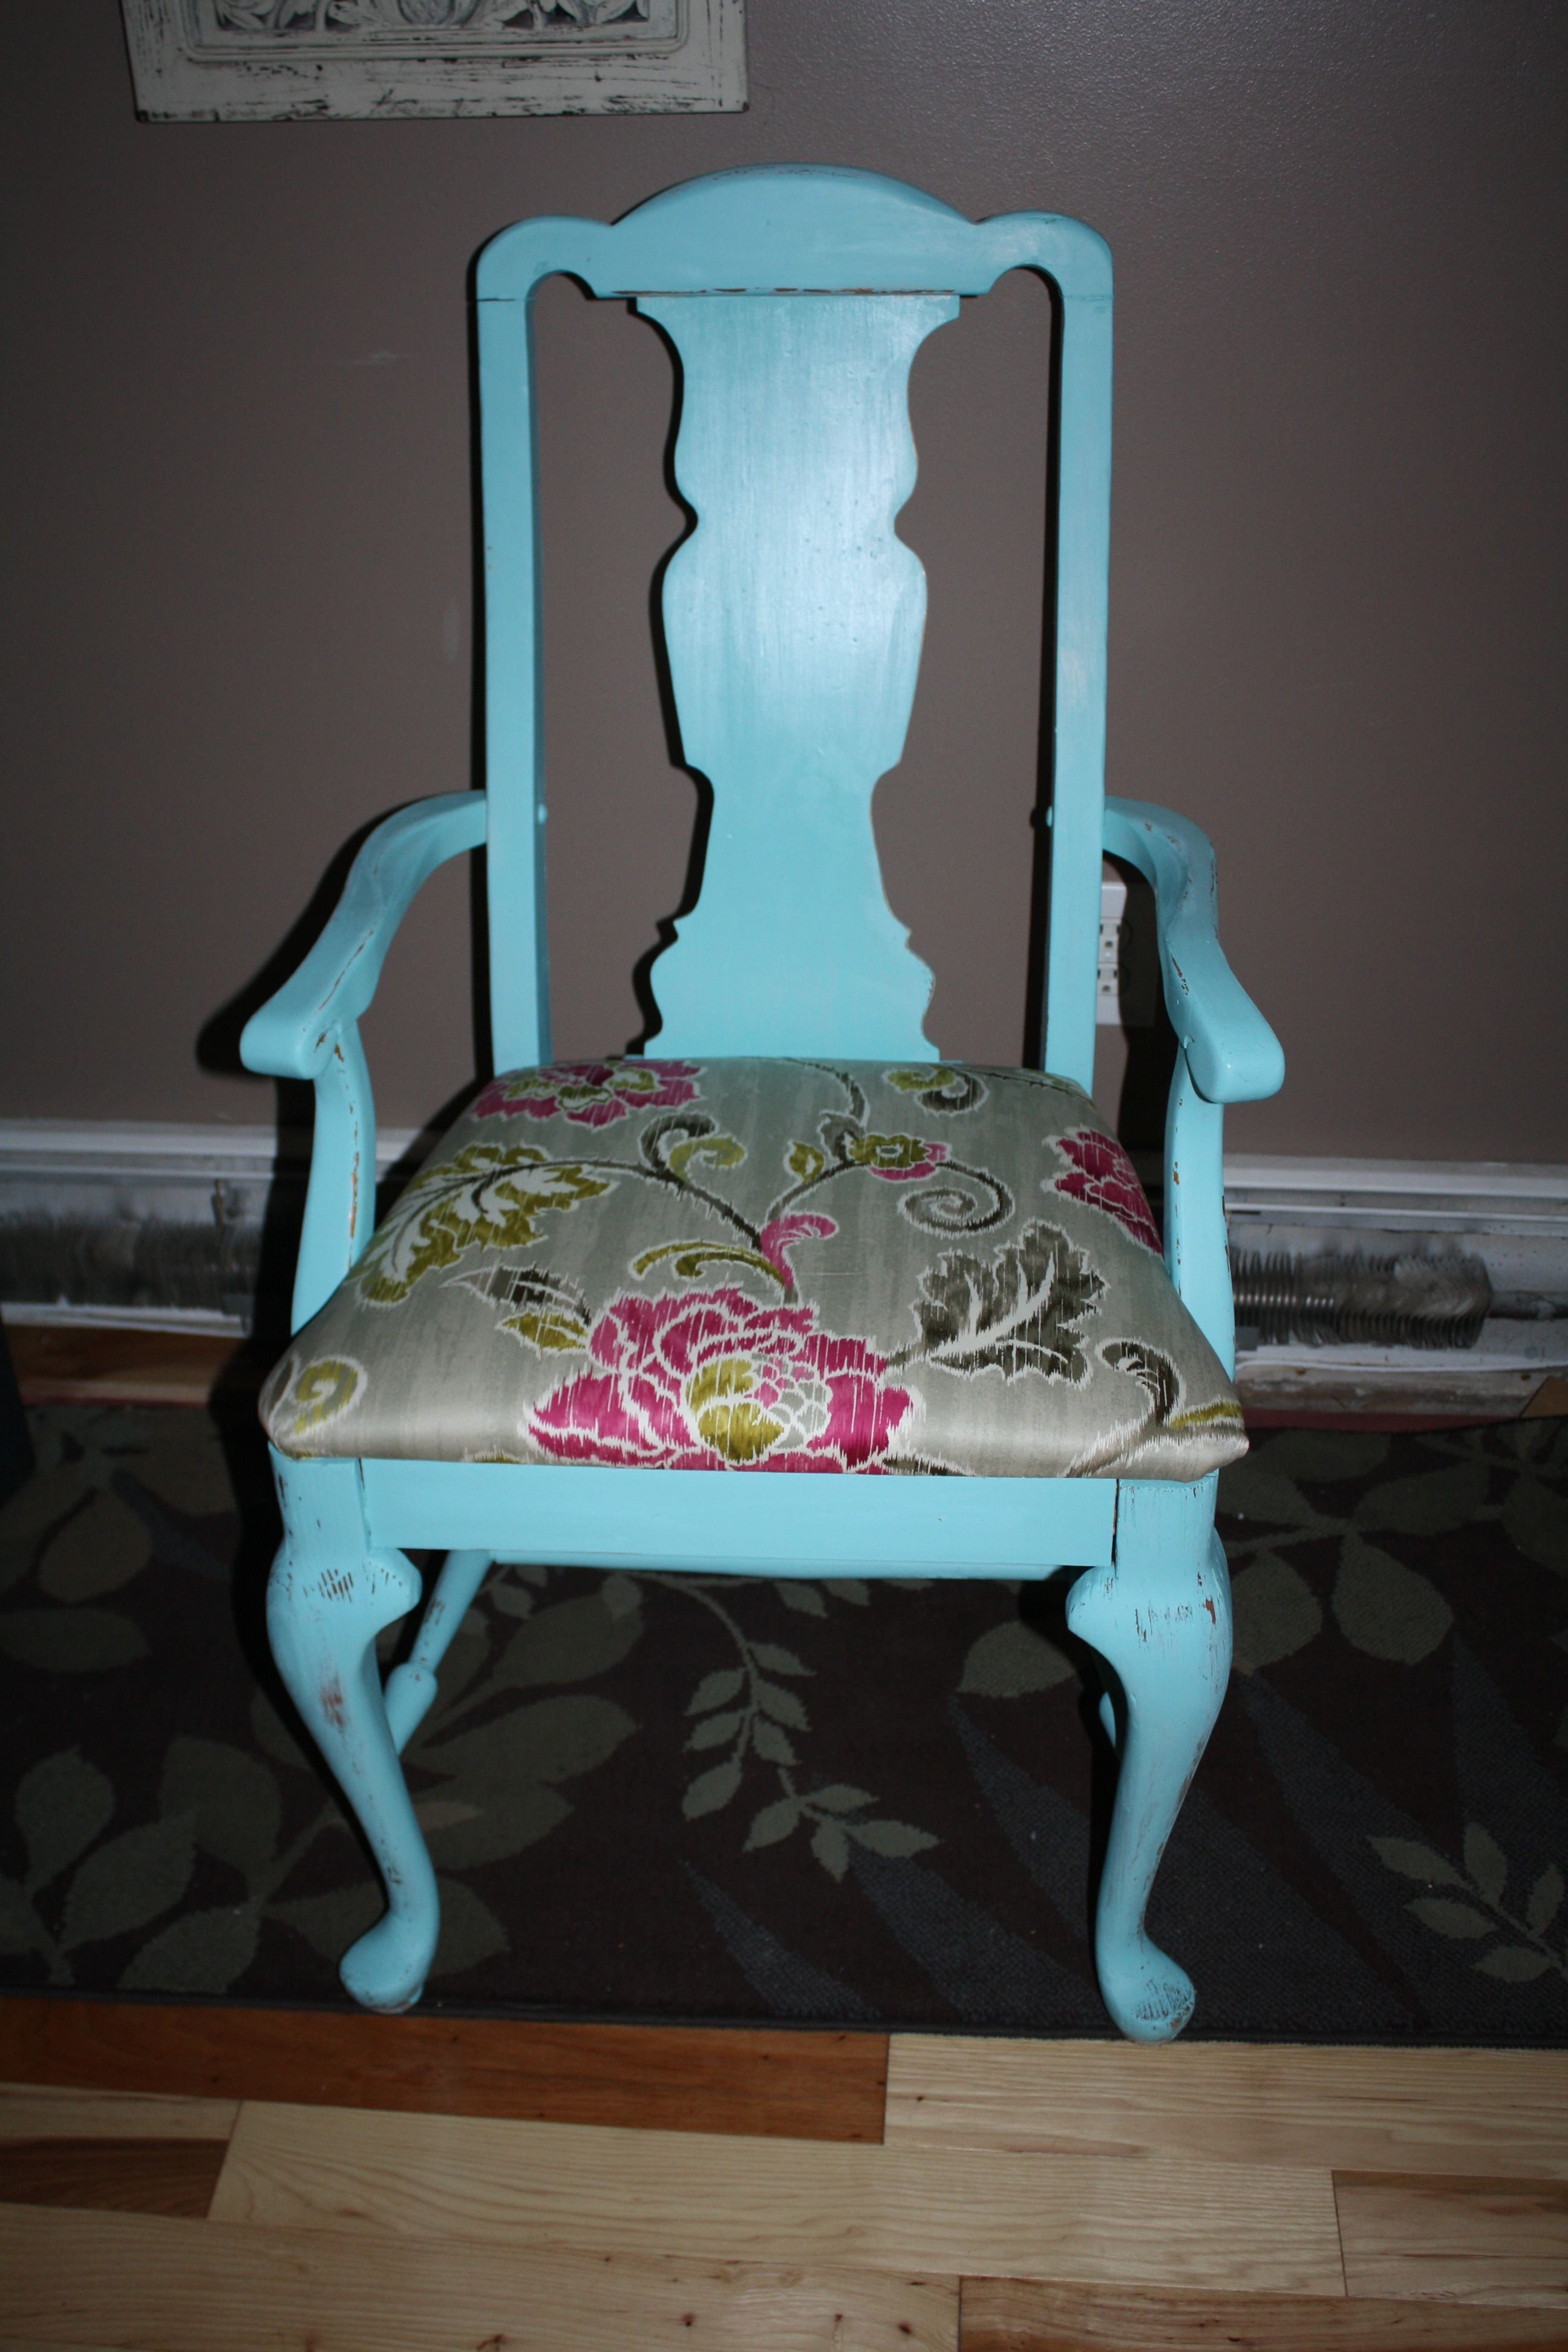 Teal Shabby Chic Chair With Floral Fabric By Redeemed Furnishings  Http://www.